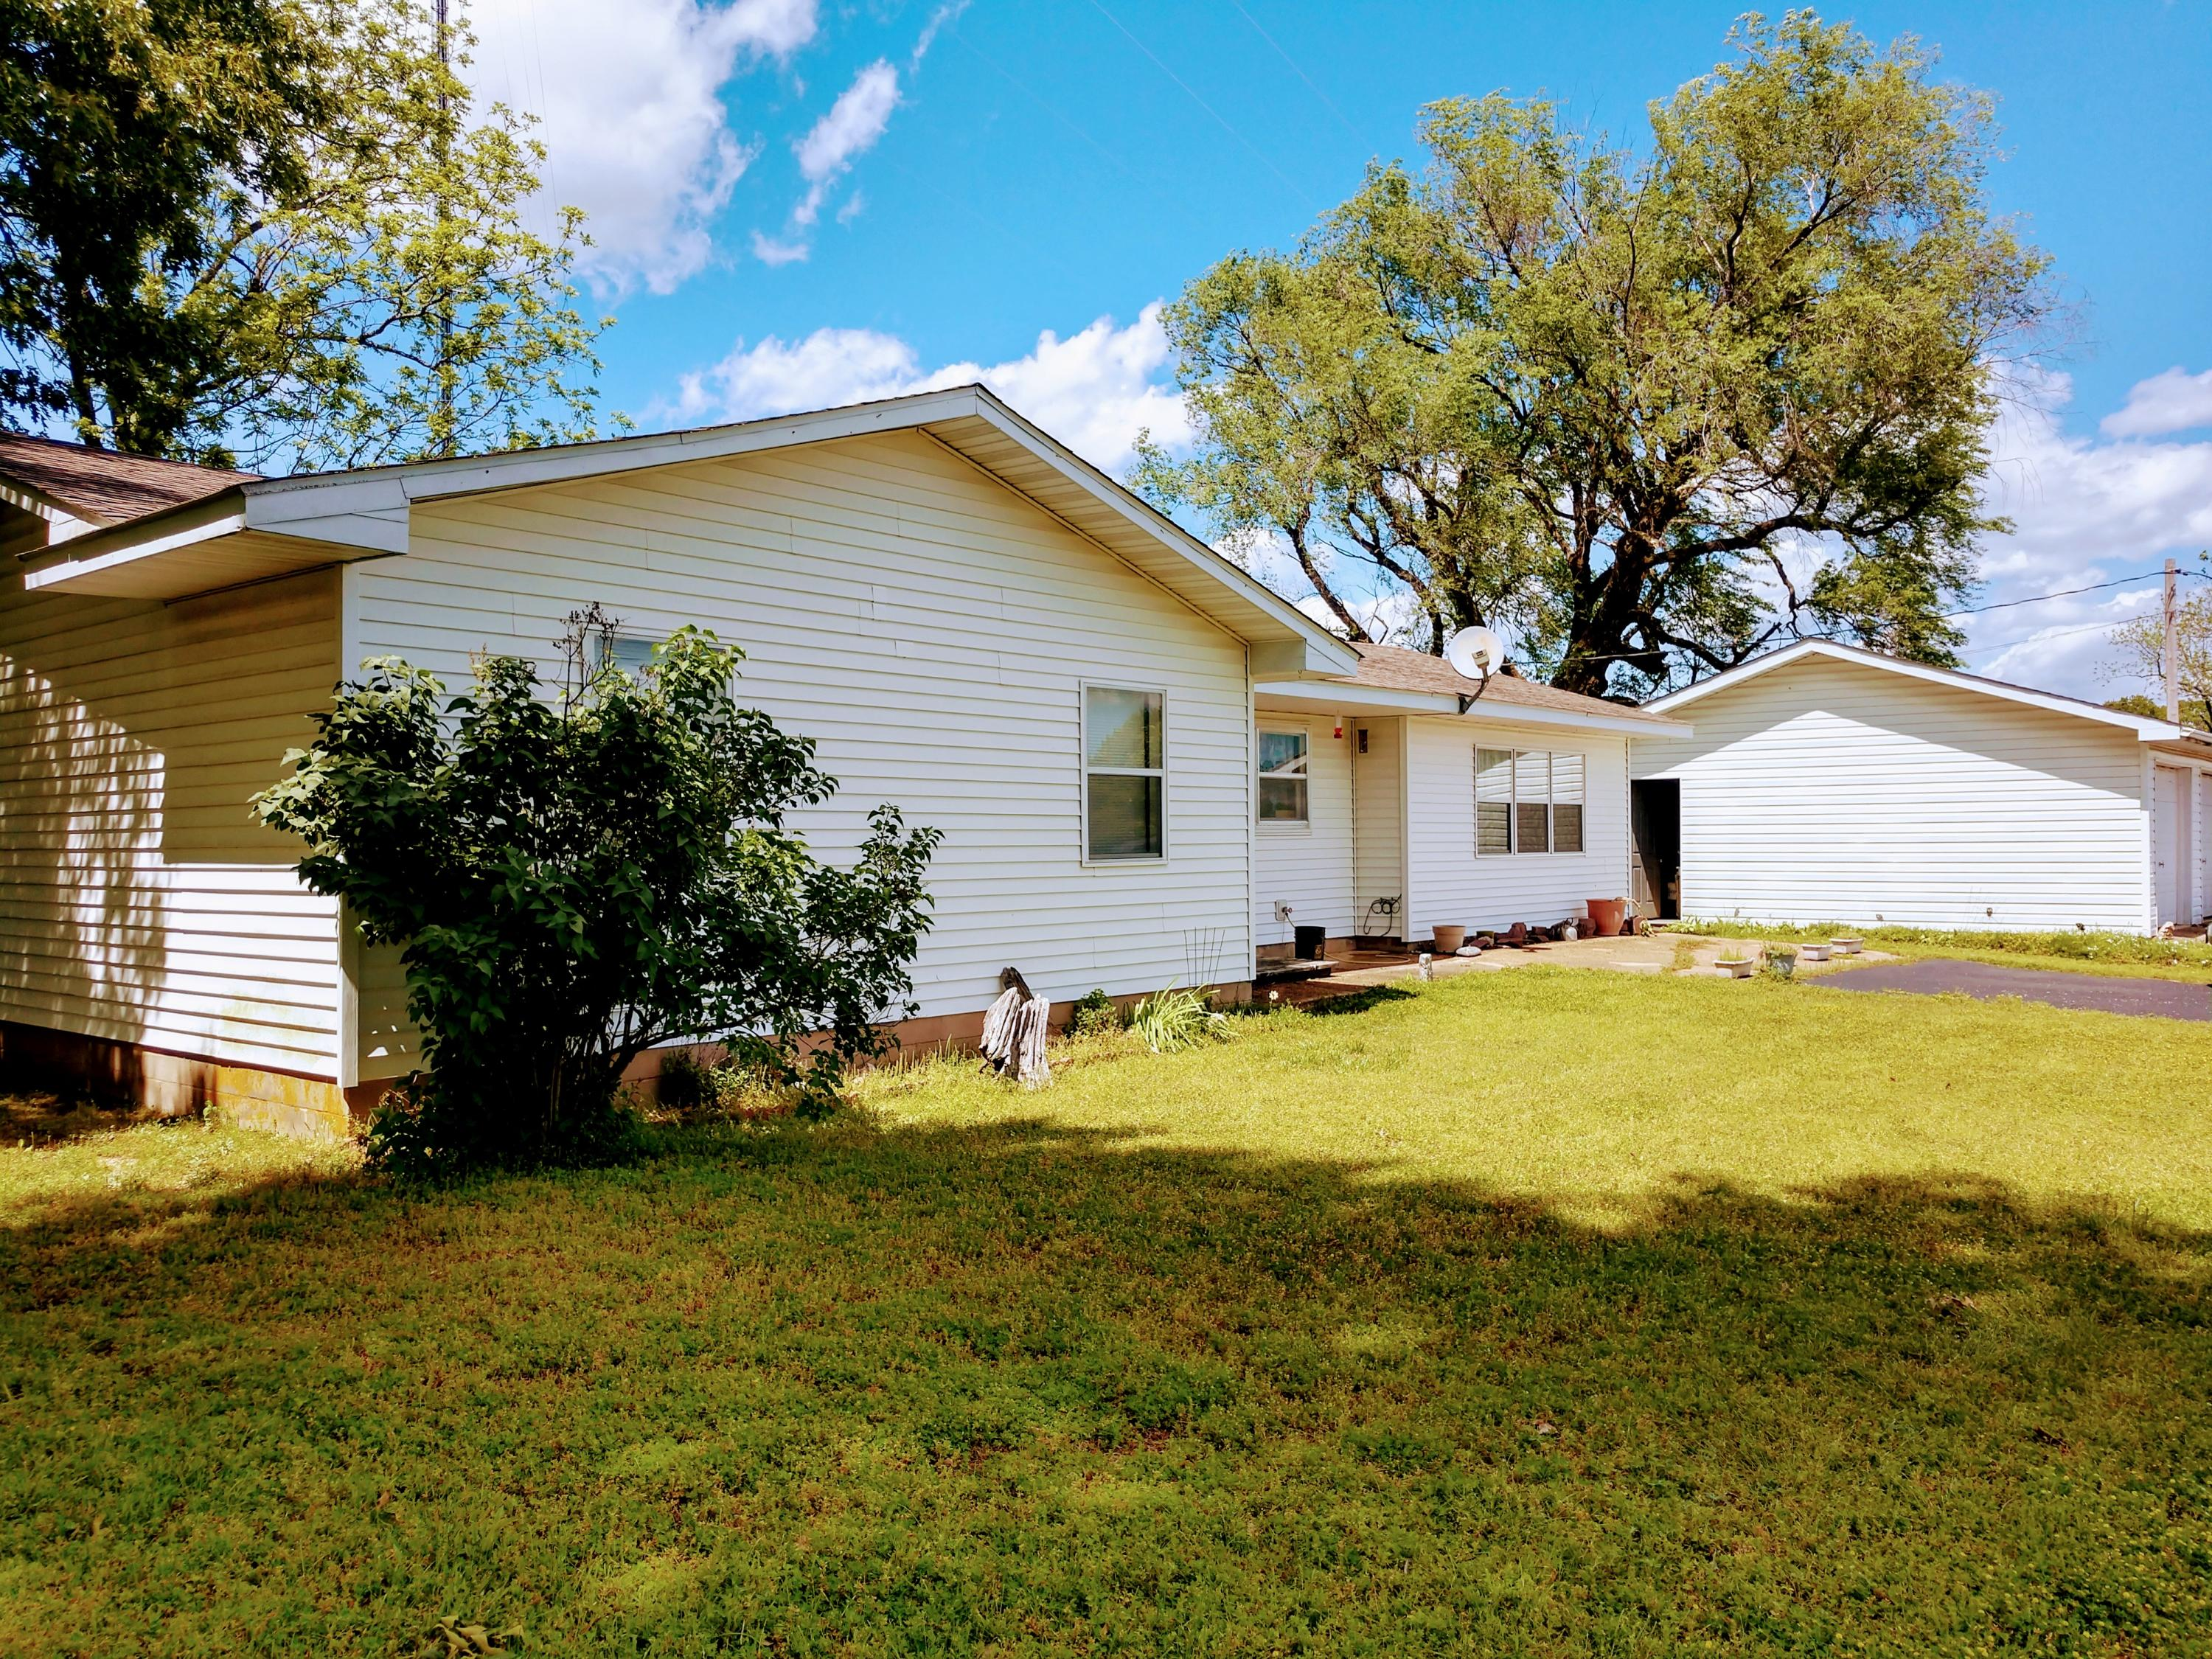 15519 Us Highway 160 Gainesville, MO 65655